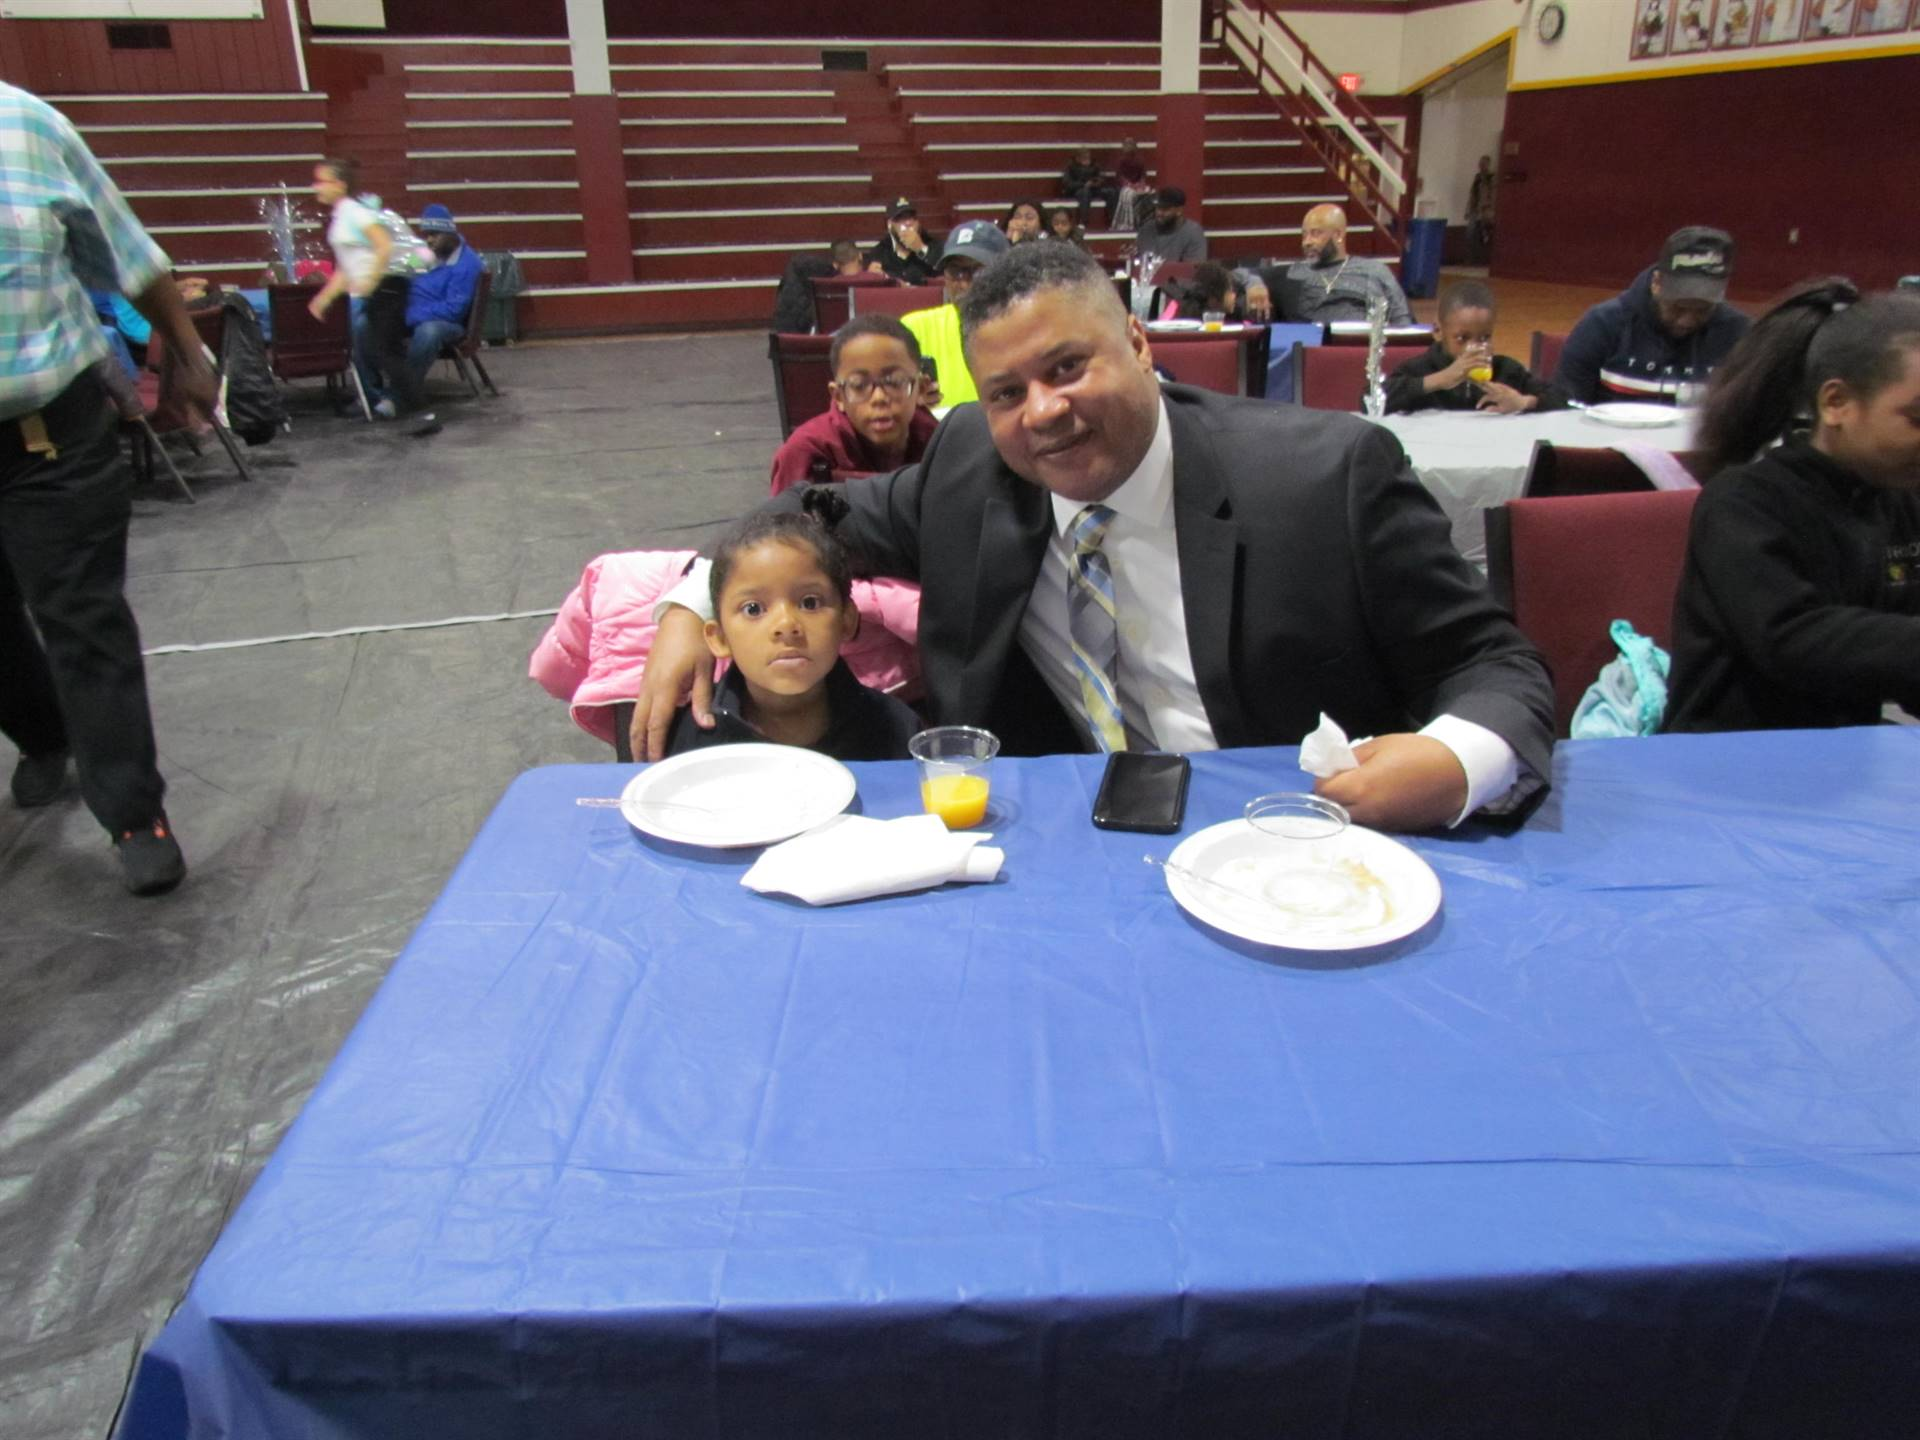 dad with his daughter eating pancakes